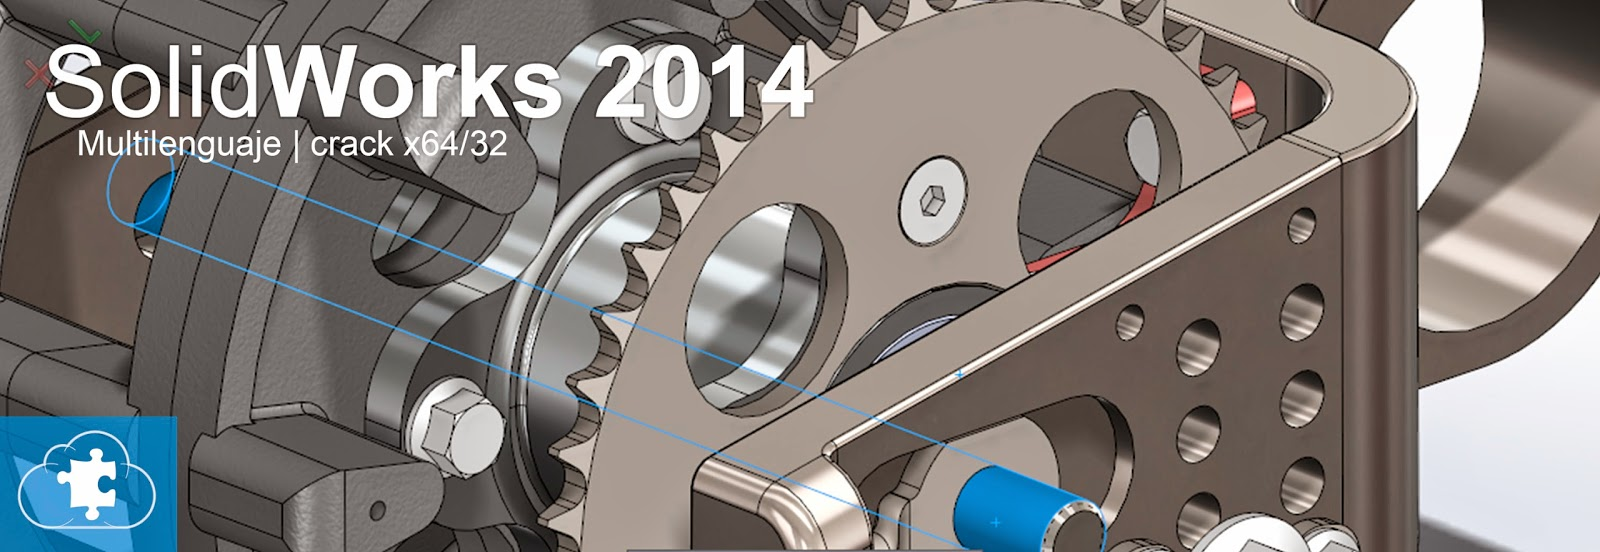 SolidWorks 2014 | SP3 | win 32/64 bits